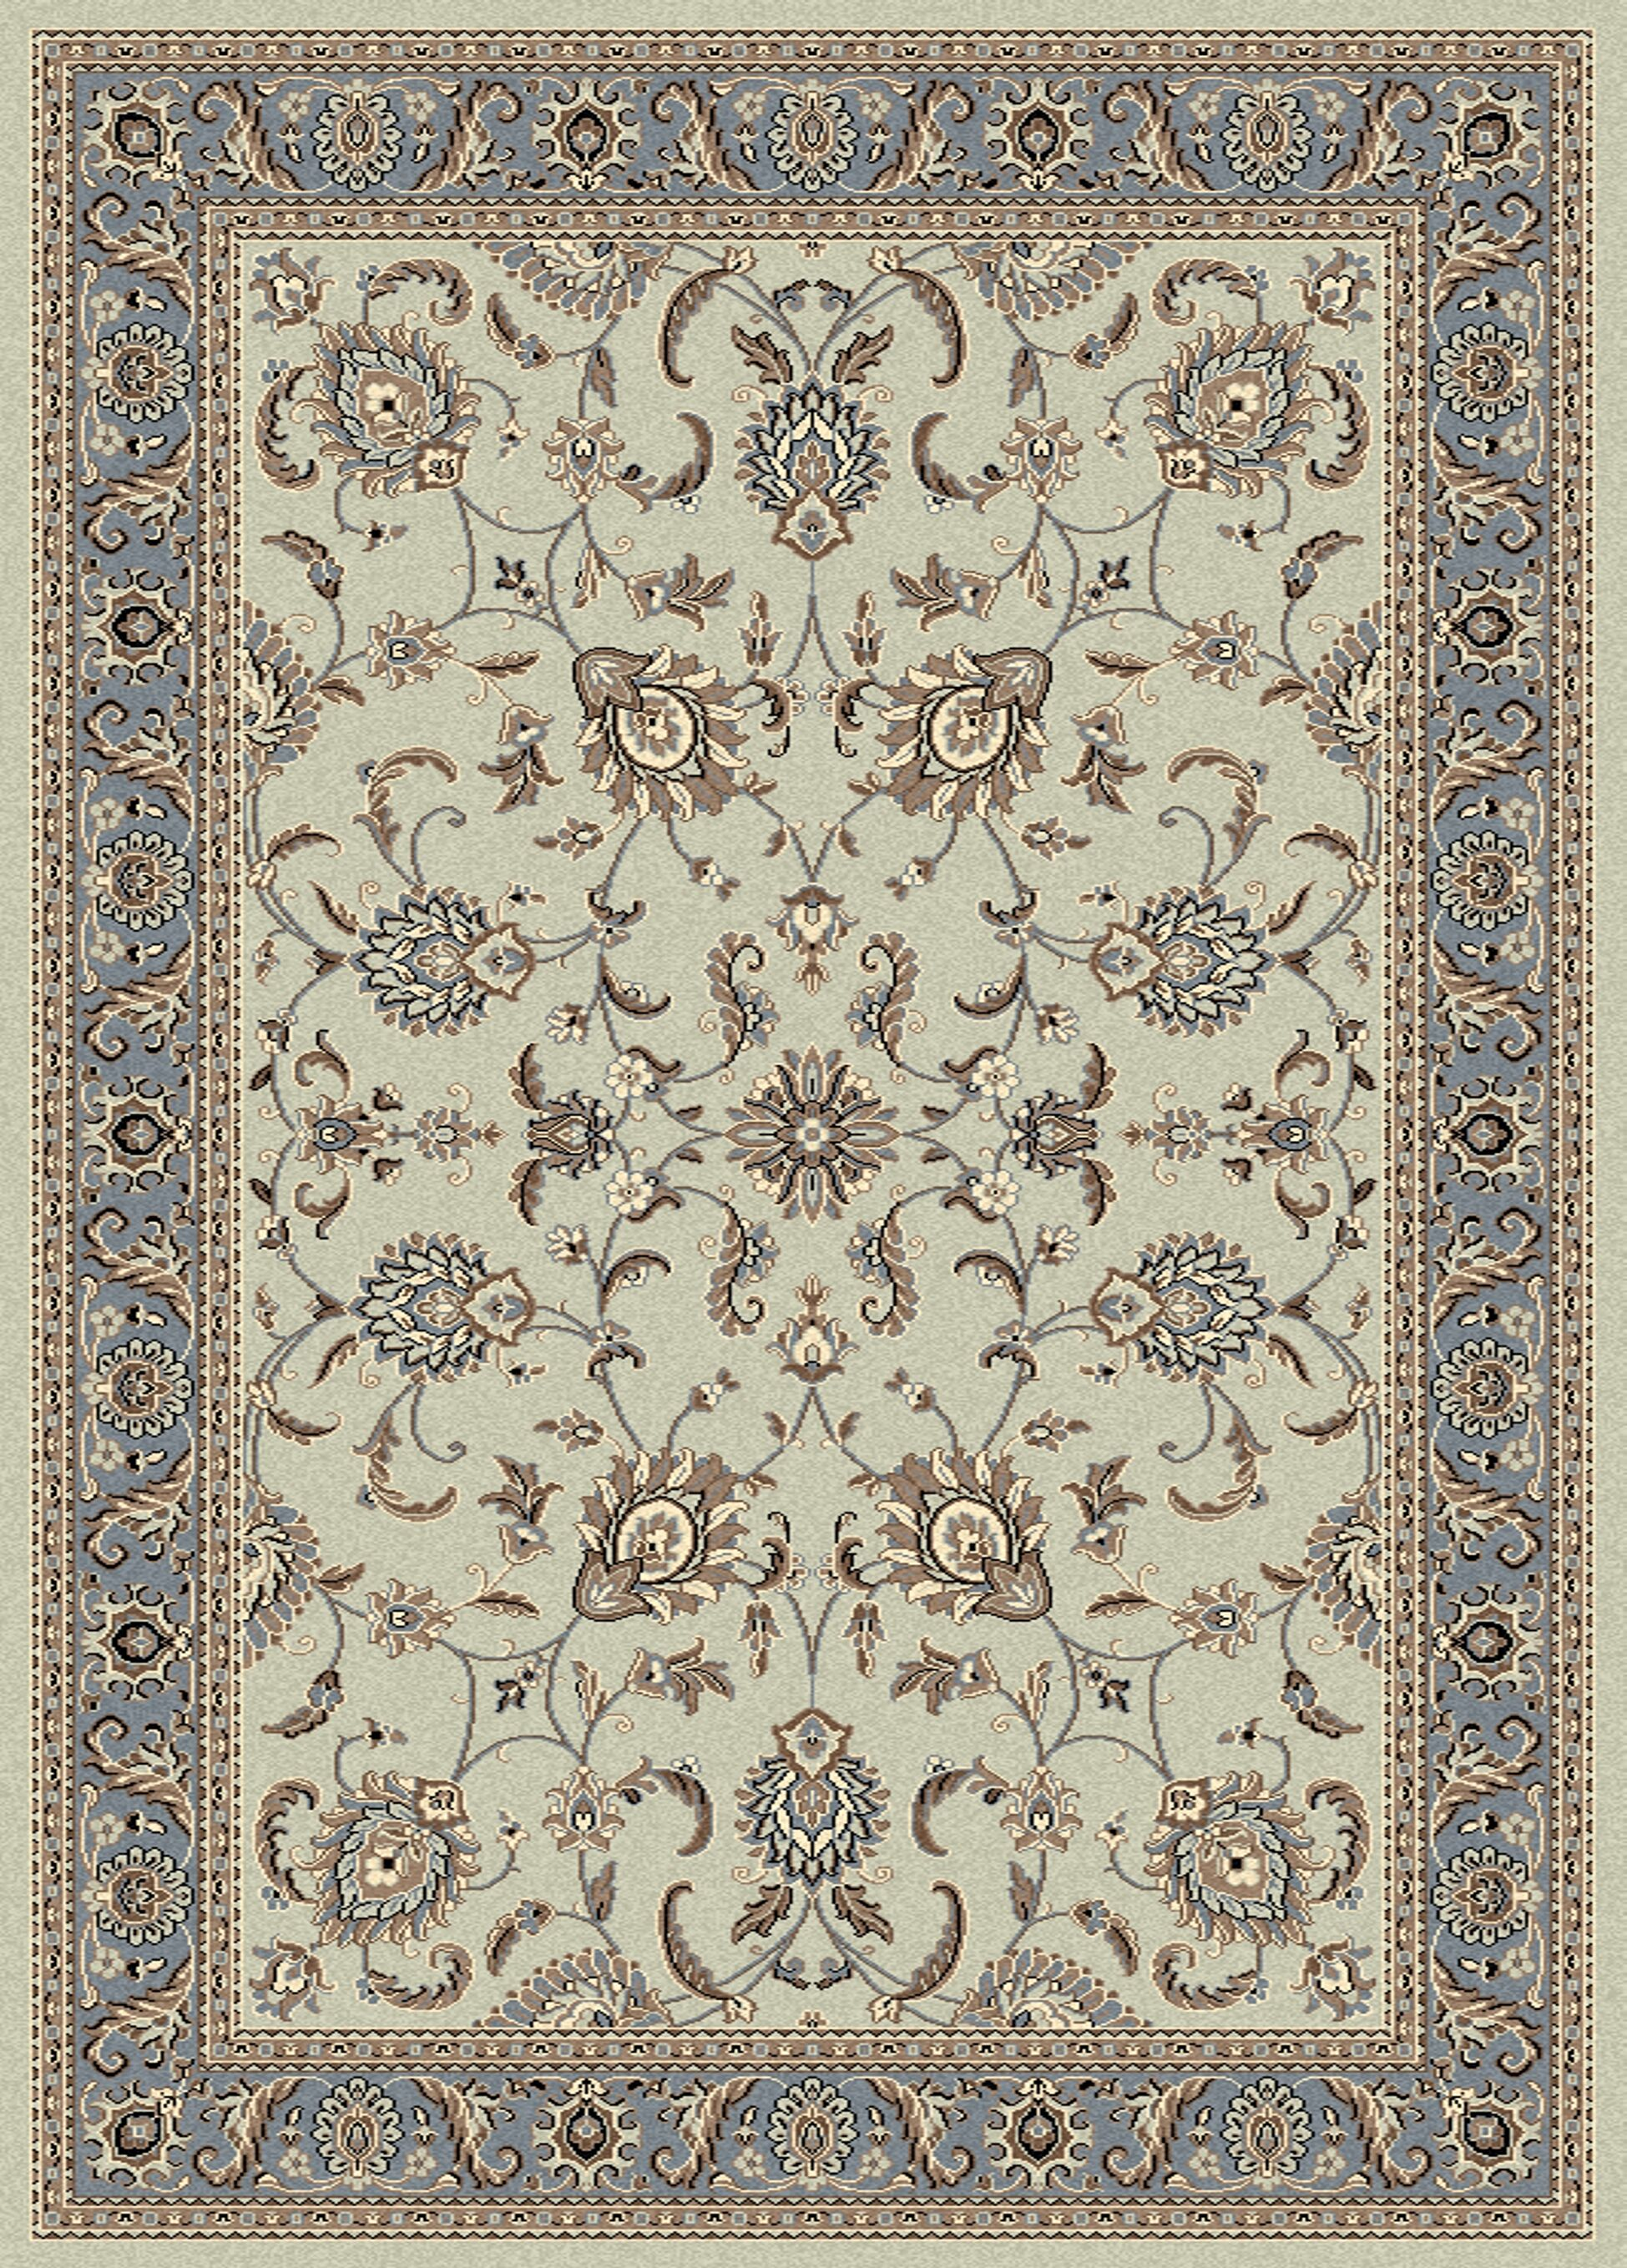 Weiser Green Area Rug Rug Size: Rectangle 5'5